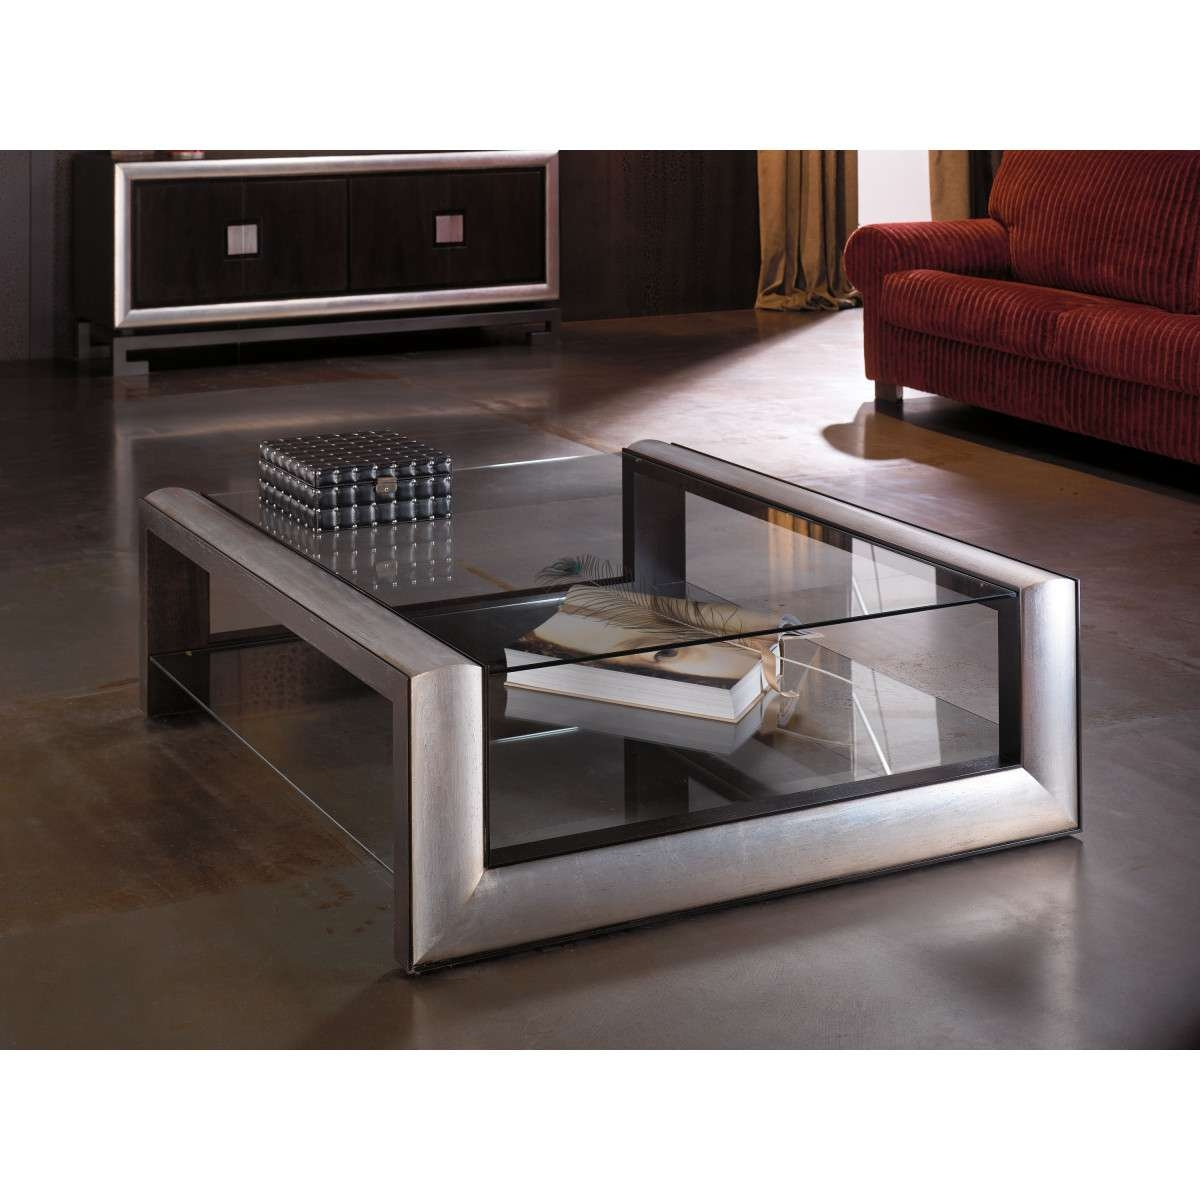 Newest Square Glass Coffee Tables Pertaining To Coffee Table: Awesome Square Glass Coffee Tables 42 Square Glass (View 18 of 20)